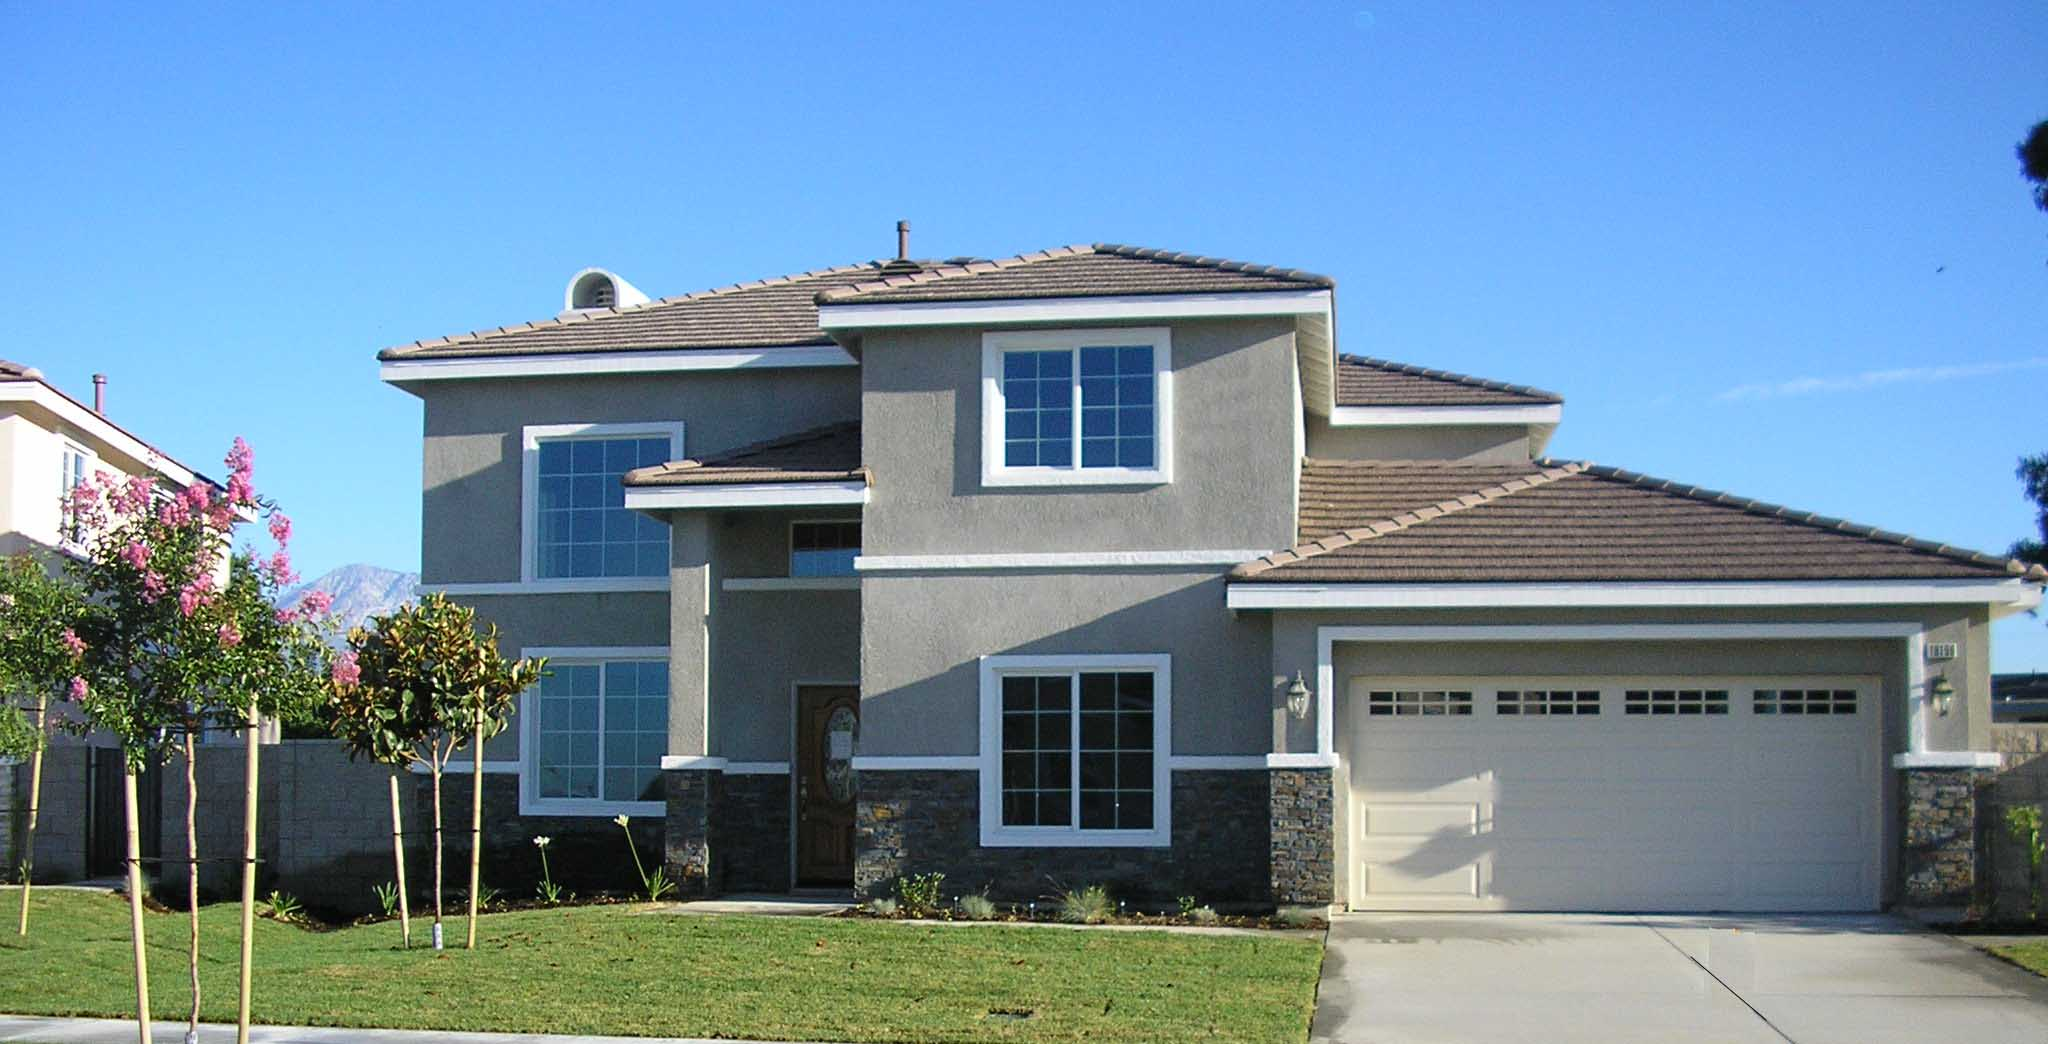 Escondido single family homes cityscape houses for sale for New two story homes